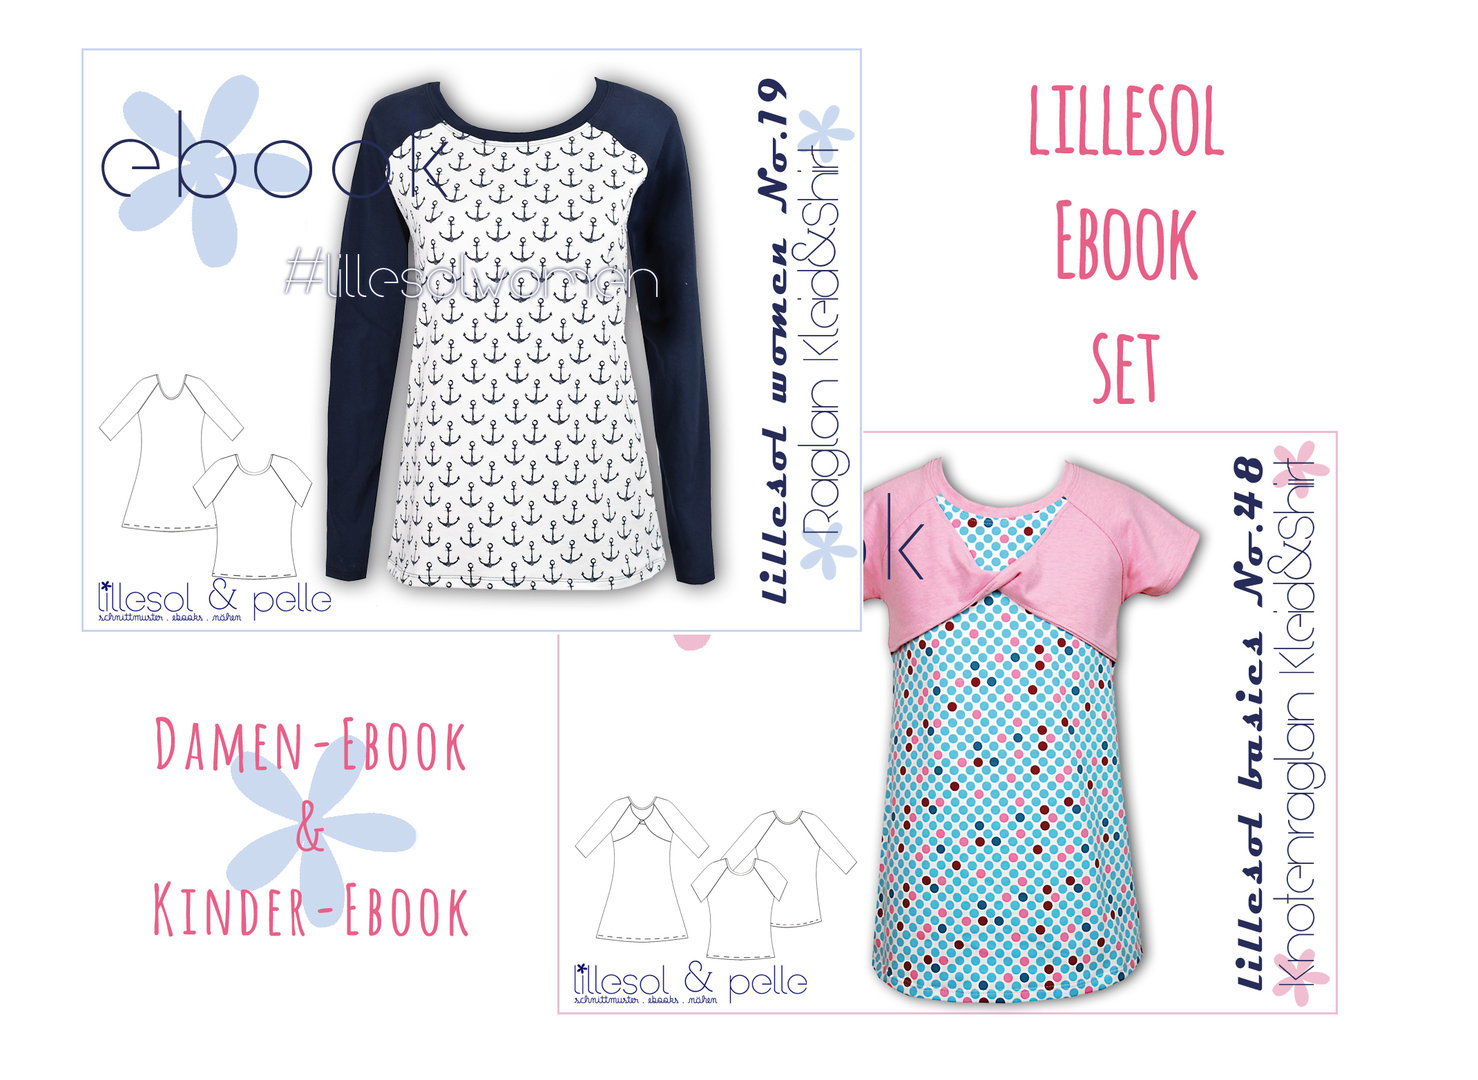 lillesol ebook set basics No.48 und women No.19 *mit Video-Nähanleitung*  * mit Video-Nähanleitung *